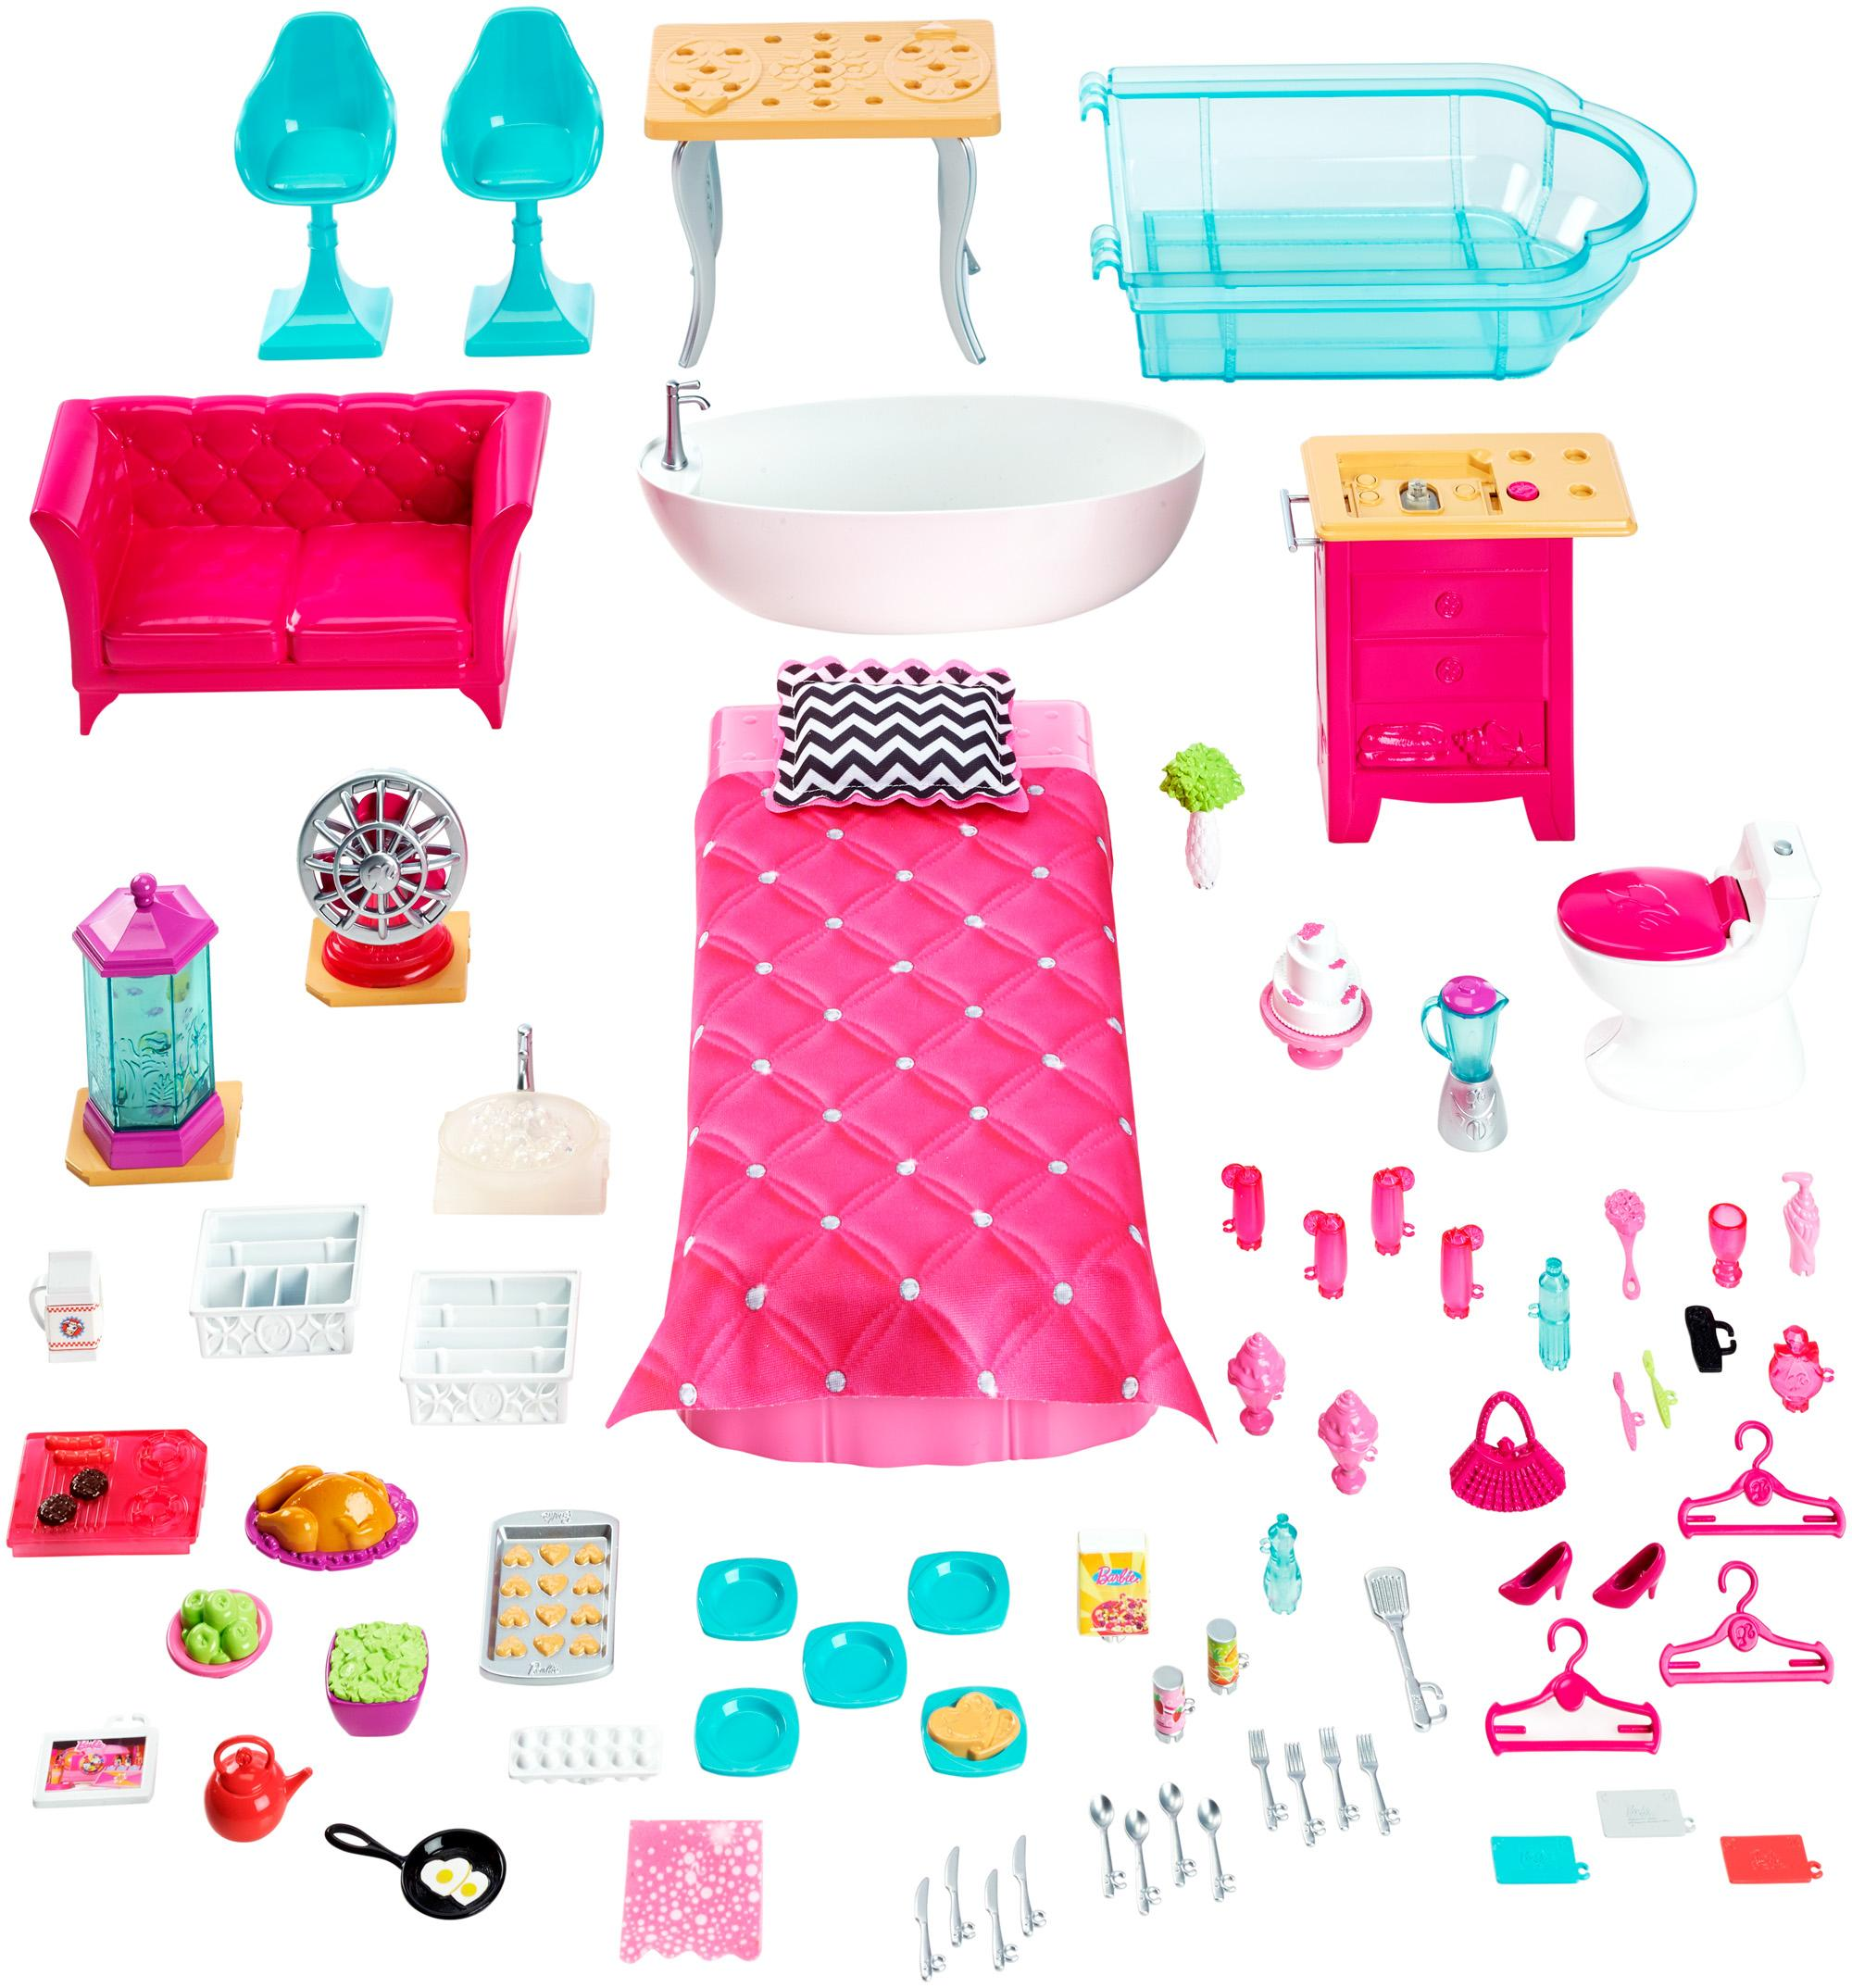 barbie house games dreamhouse toys amp 10079